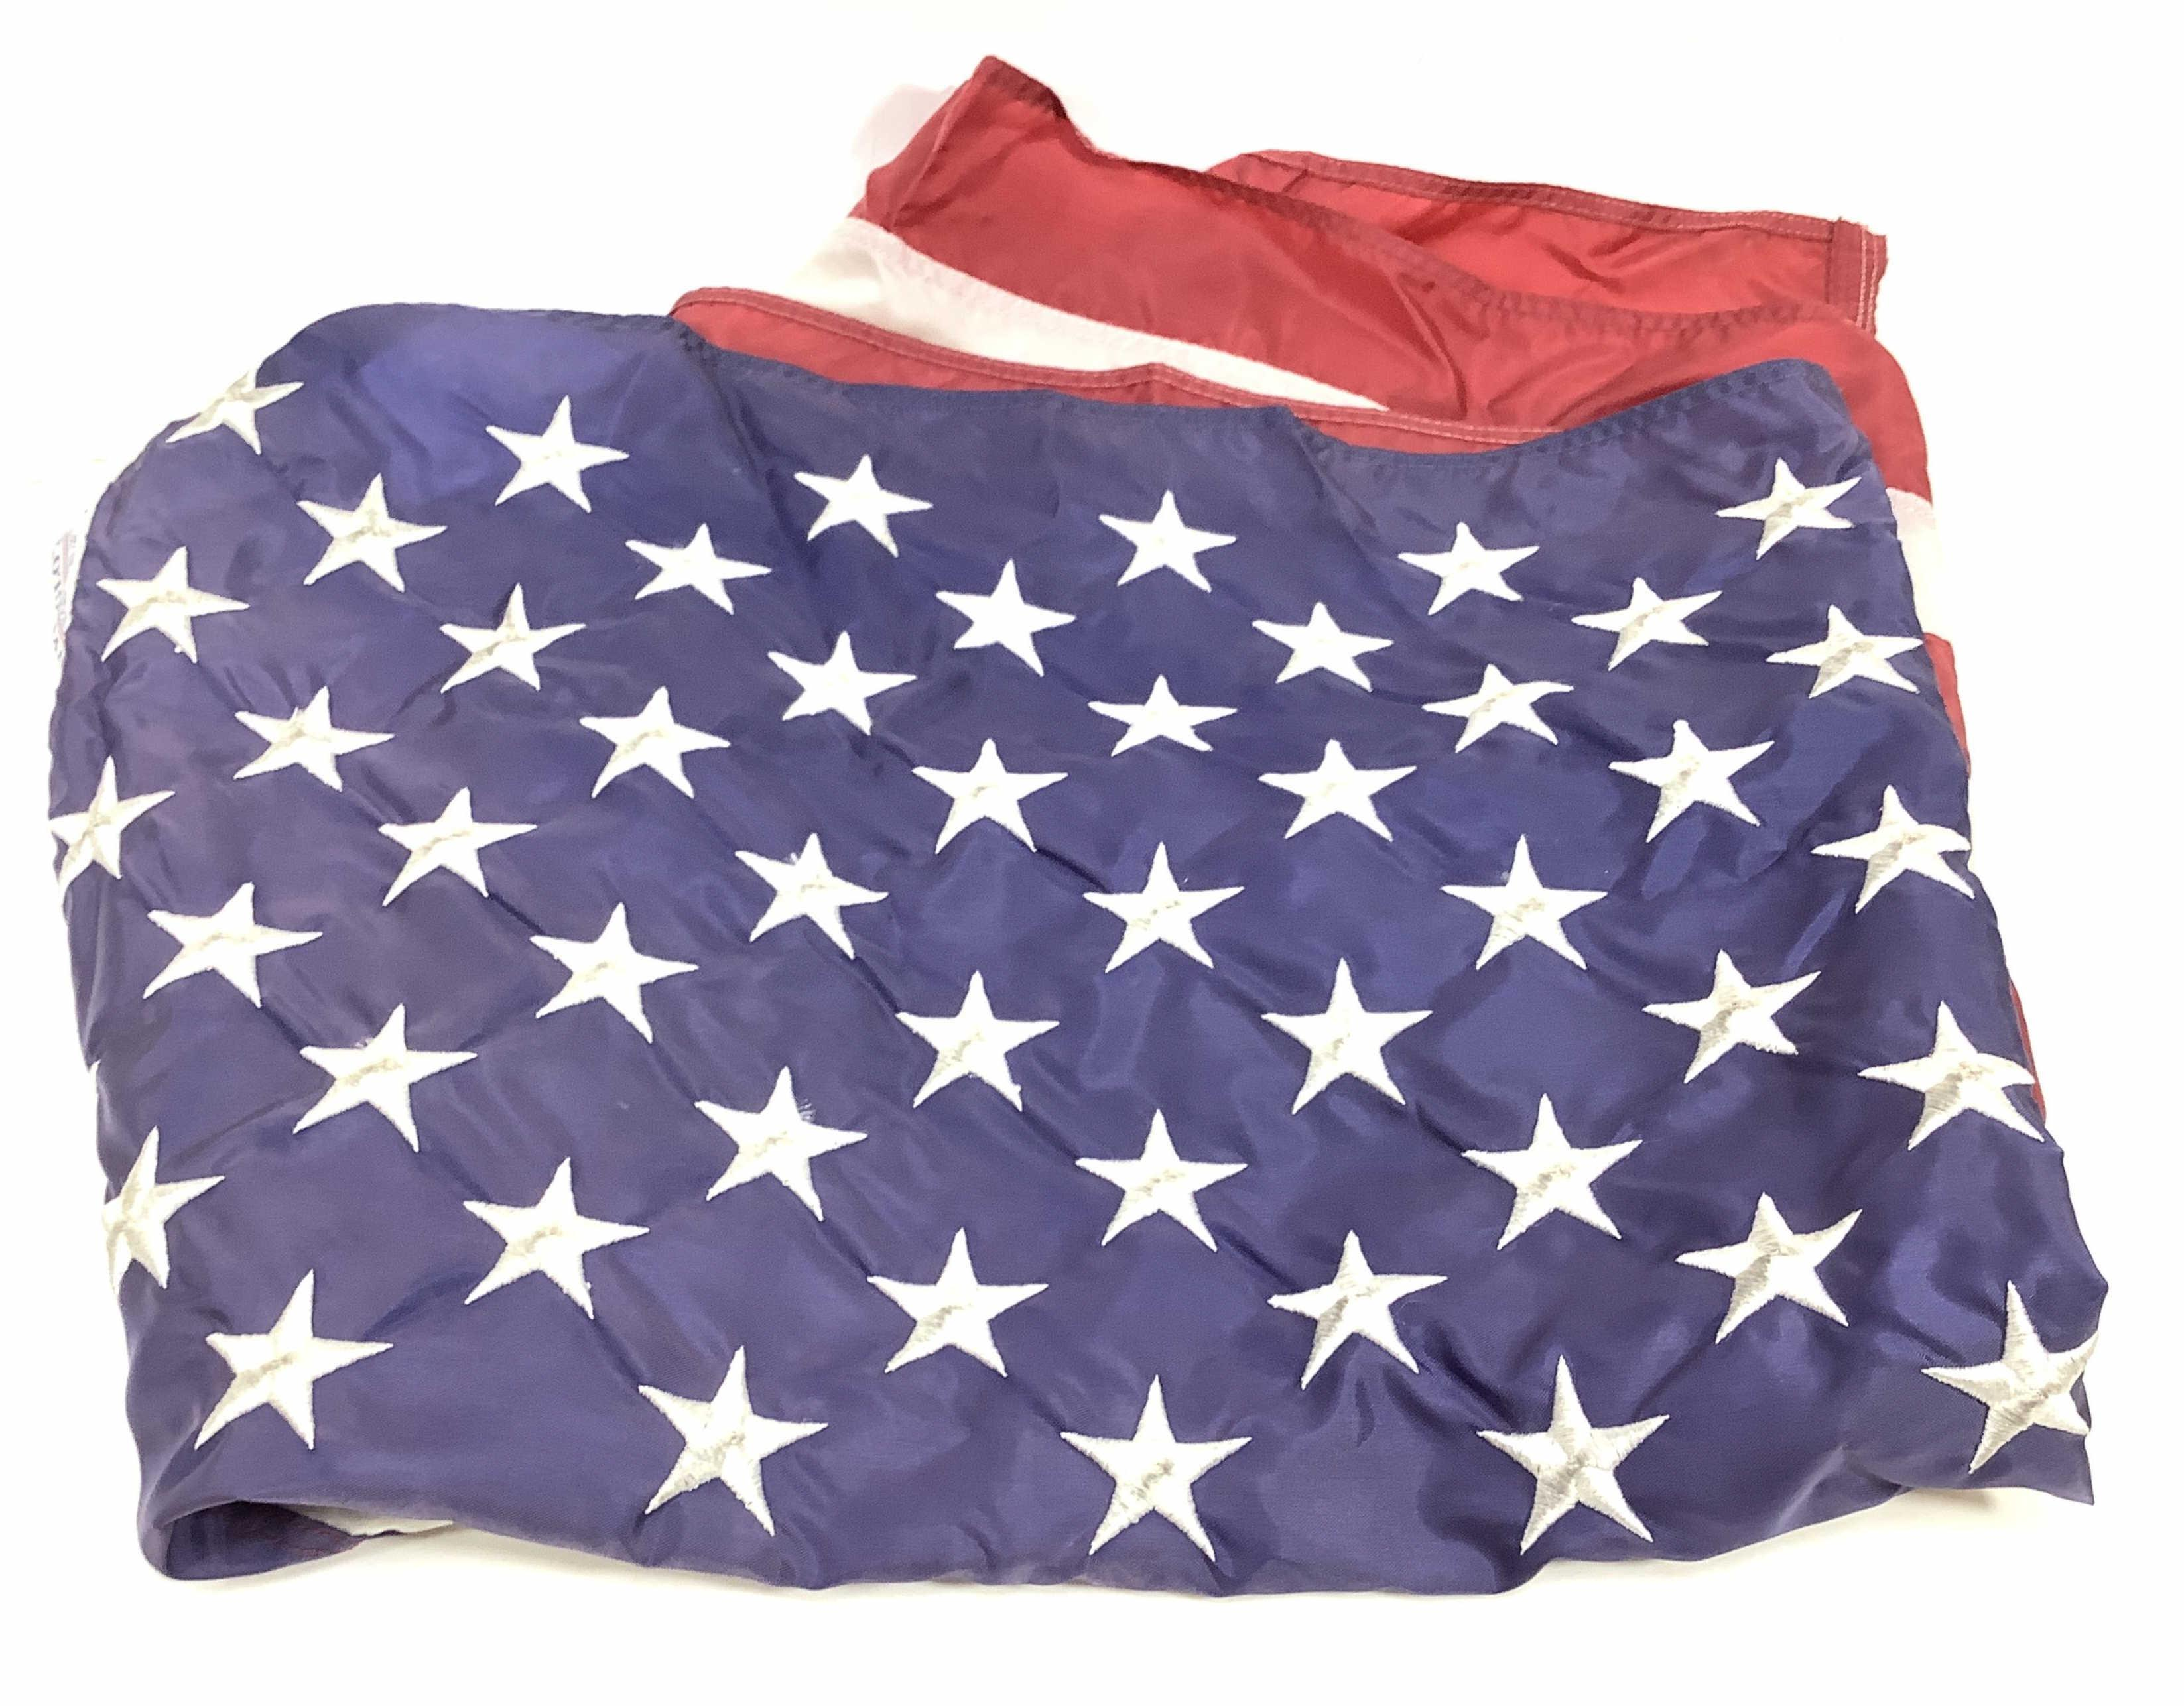 Nyl-Glo 50 Star Stitched Nylon Us Flag